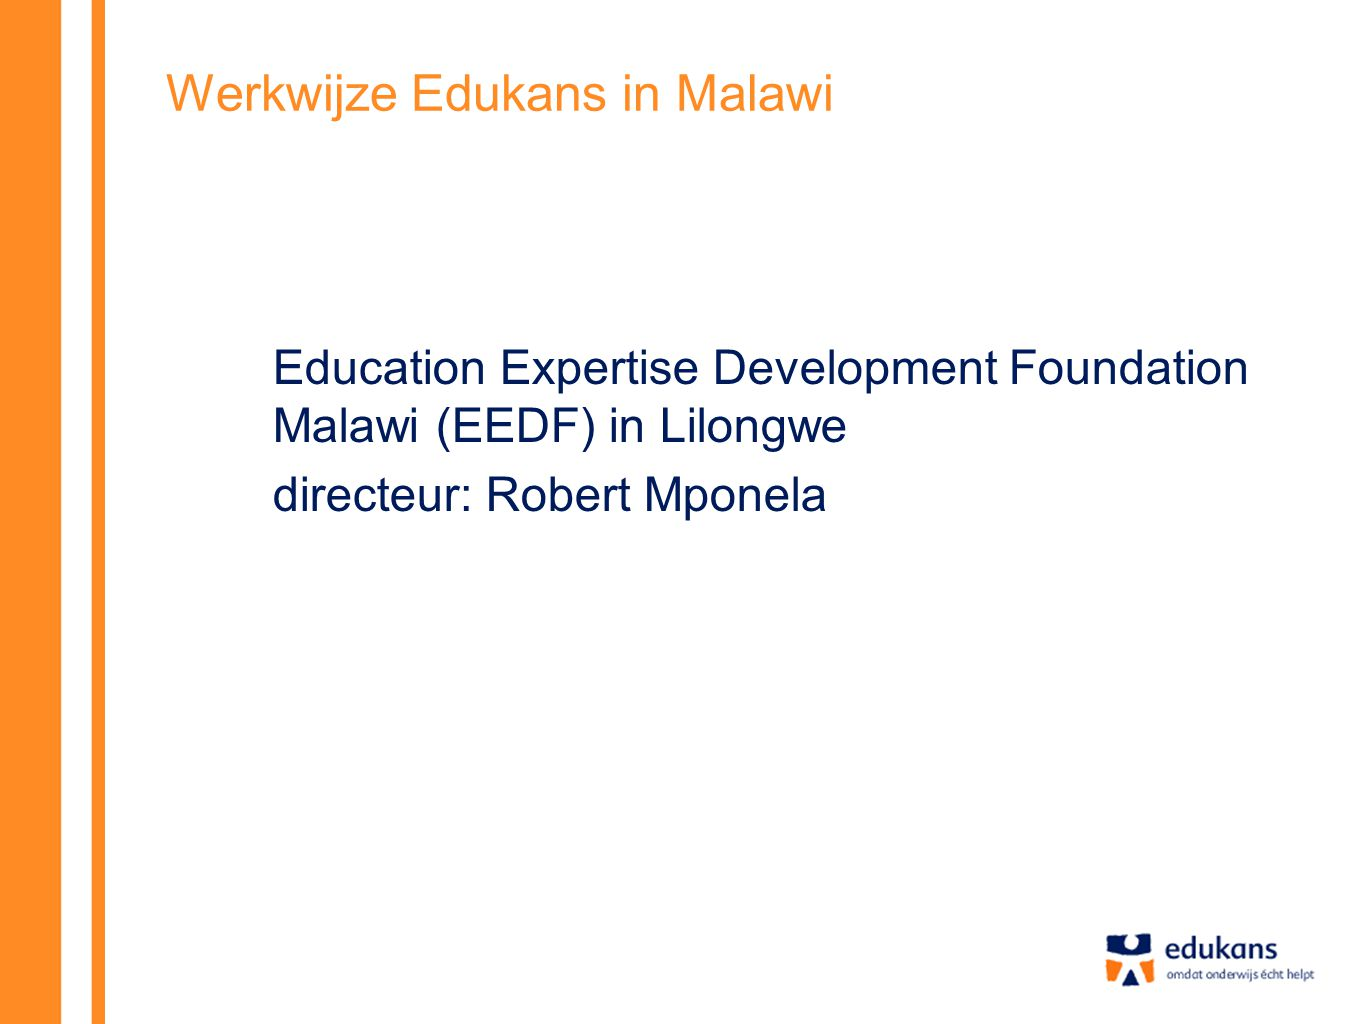 Werkwijze Edukans in Malawi Education Expertise Development Foundation Malawi (EEDF) in Lilongwe directeur: Robert Mponela